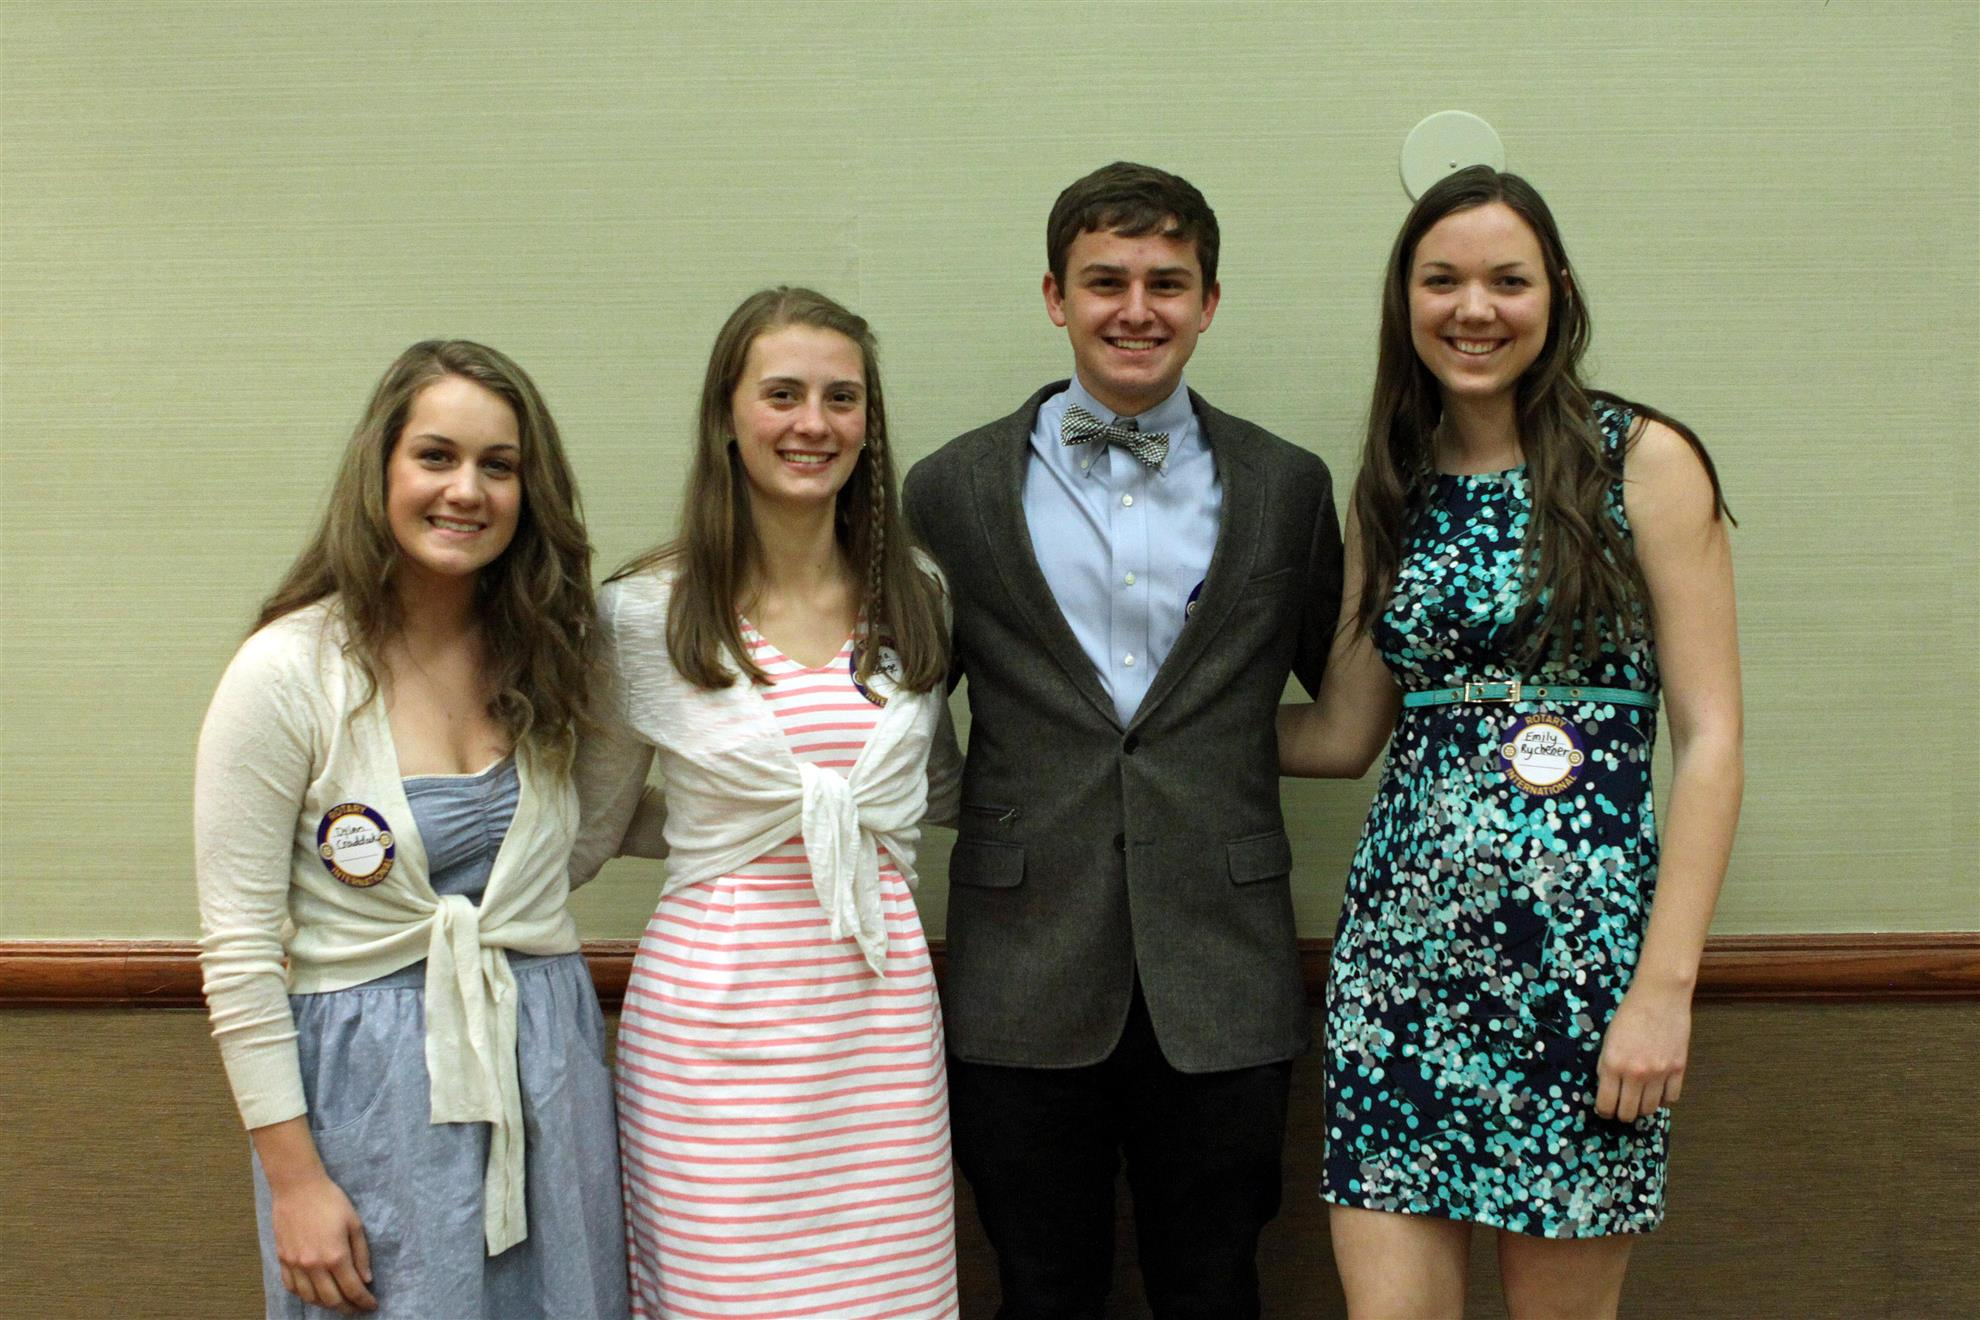 Cheyenne Mountain High School Student Rotarians Awarded Scholarships